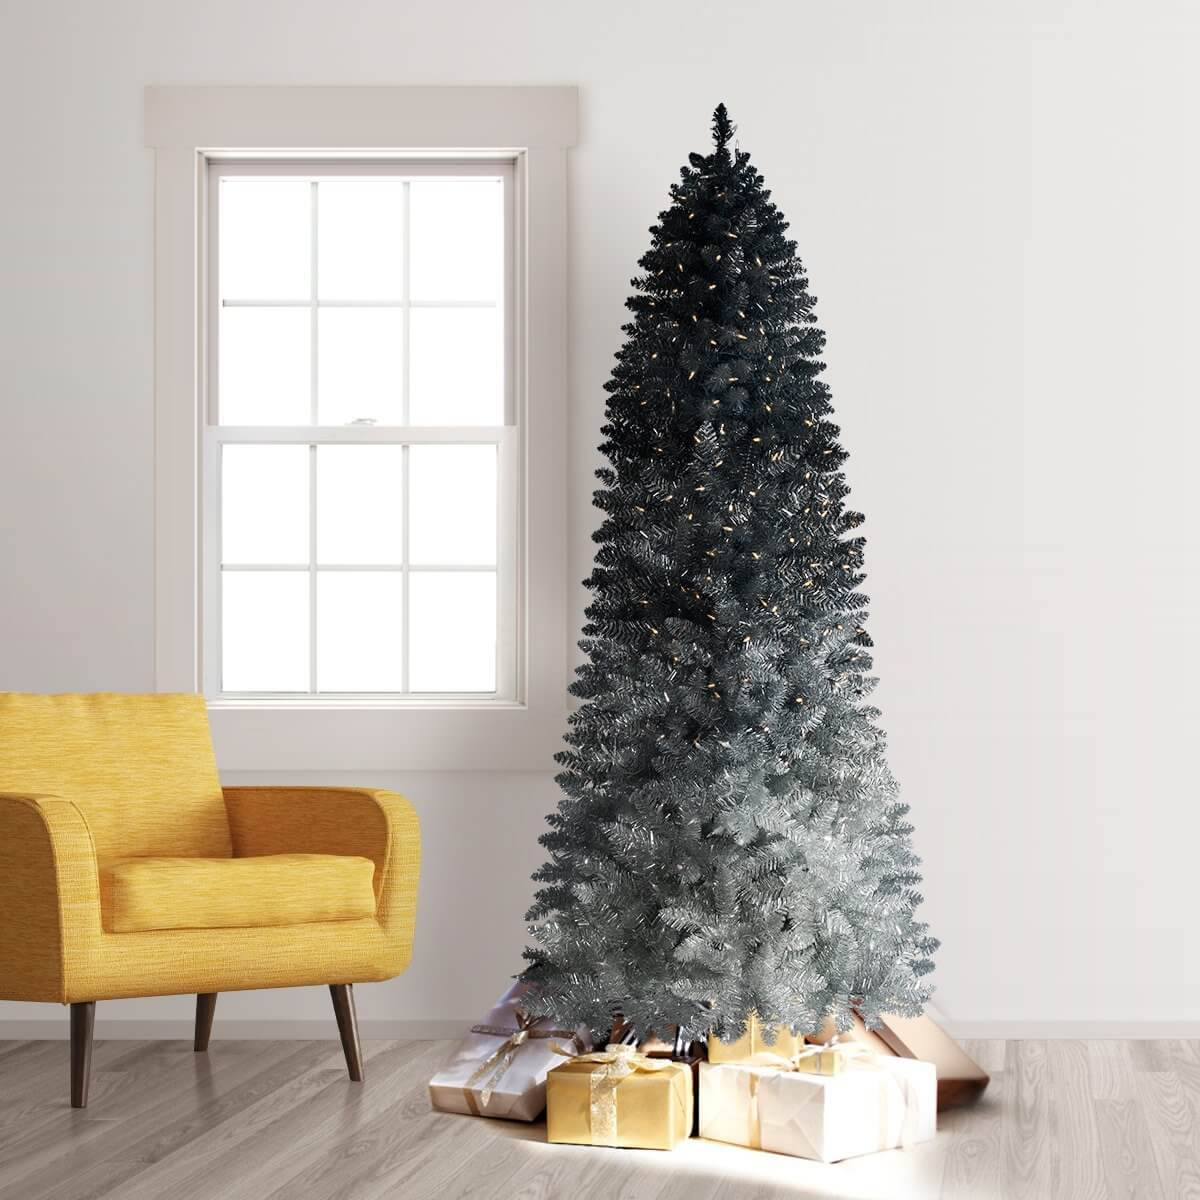 4 ombré Christmas trees to light up your holidays―Looking to brighten up your home